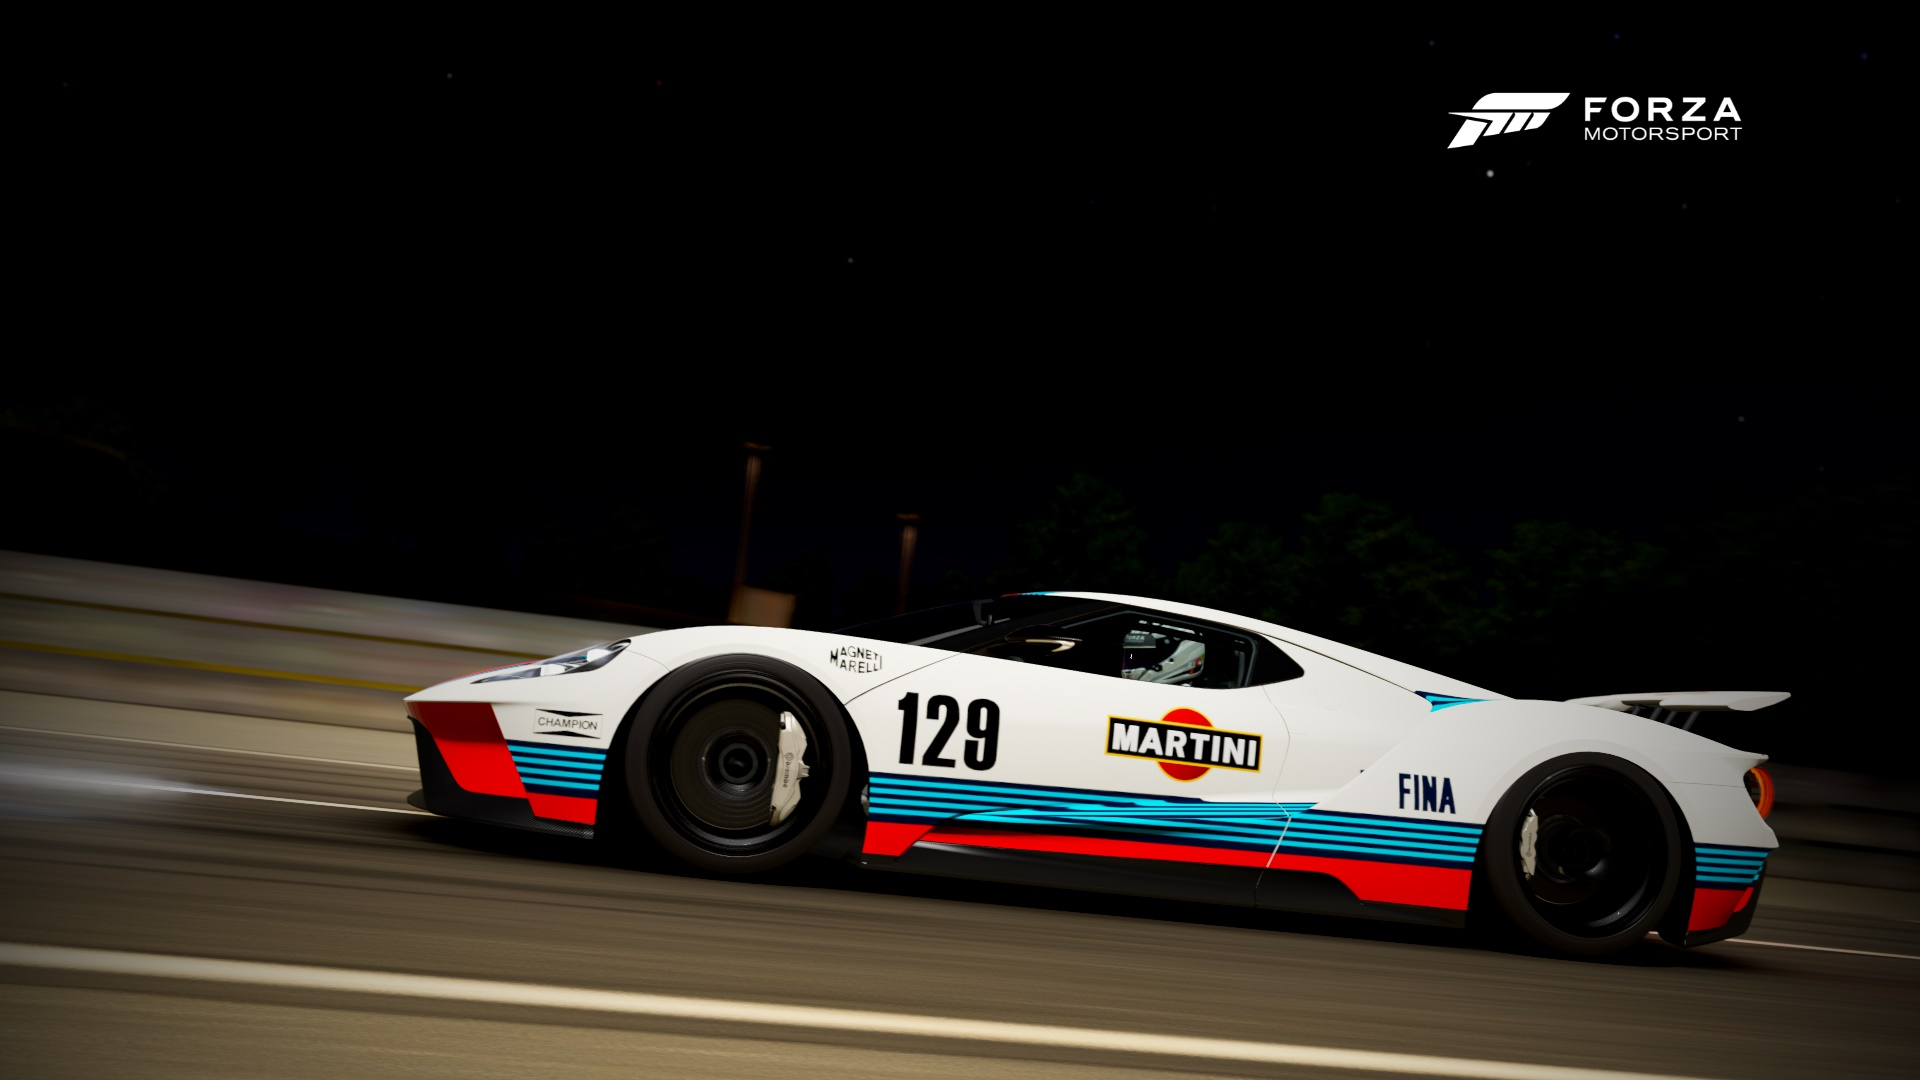 Race Dewtune Fm6 Liveries Added Ferrari 312p To Op Paint Booth Forza Motorsport Forums